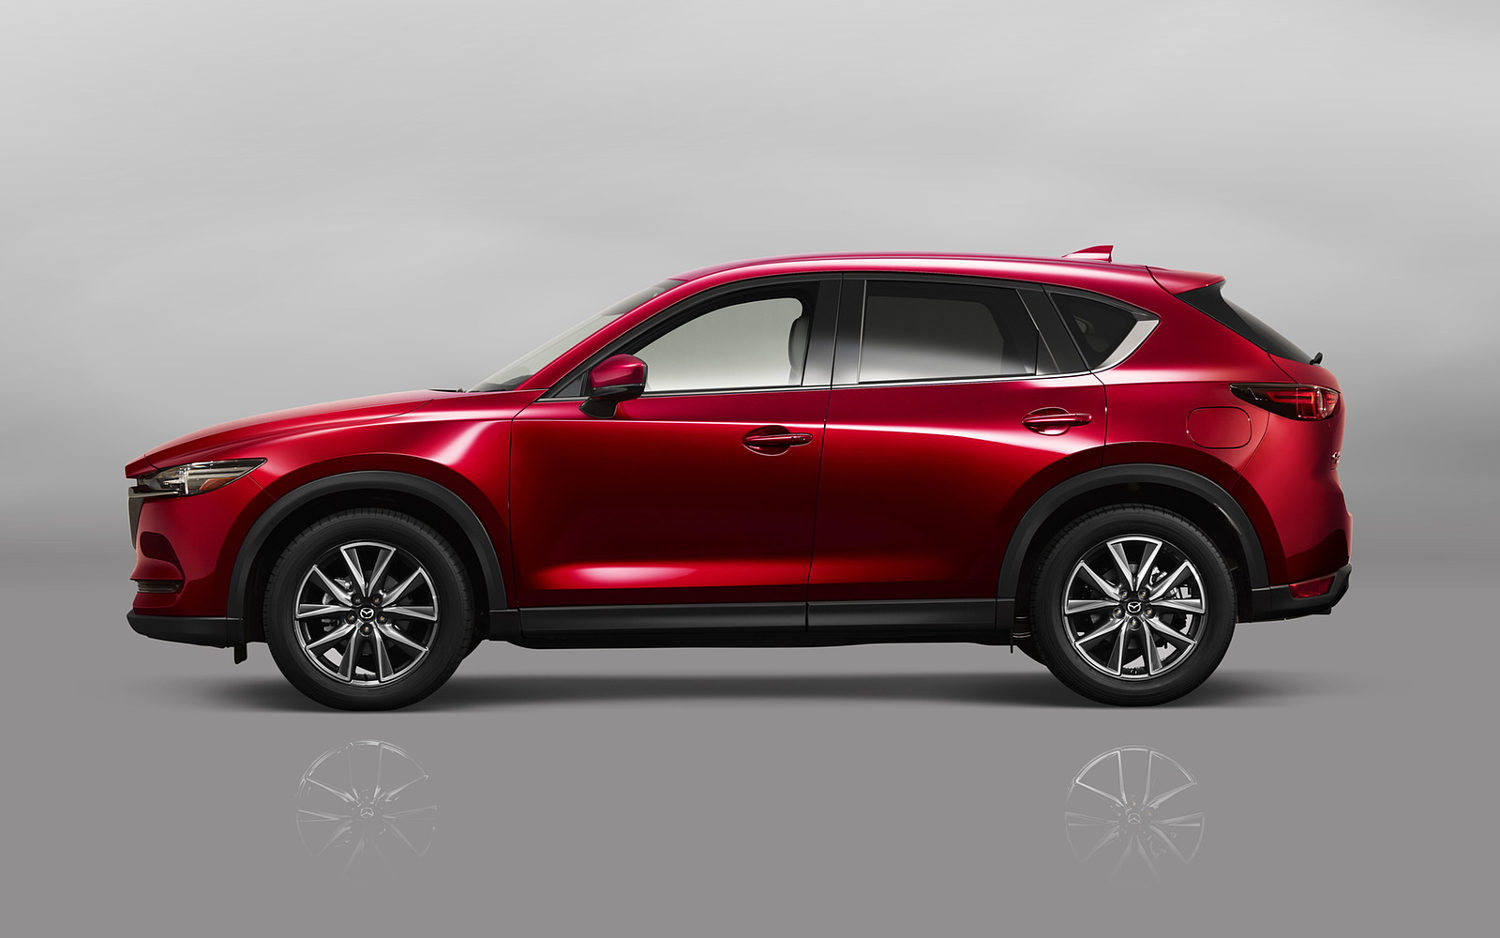 2017 mazda cx 5 road test consumer reports autos post. Black Bedroom Furniture Sets. Home Design Ideas